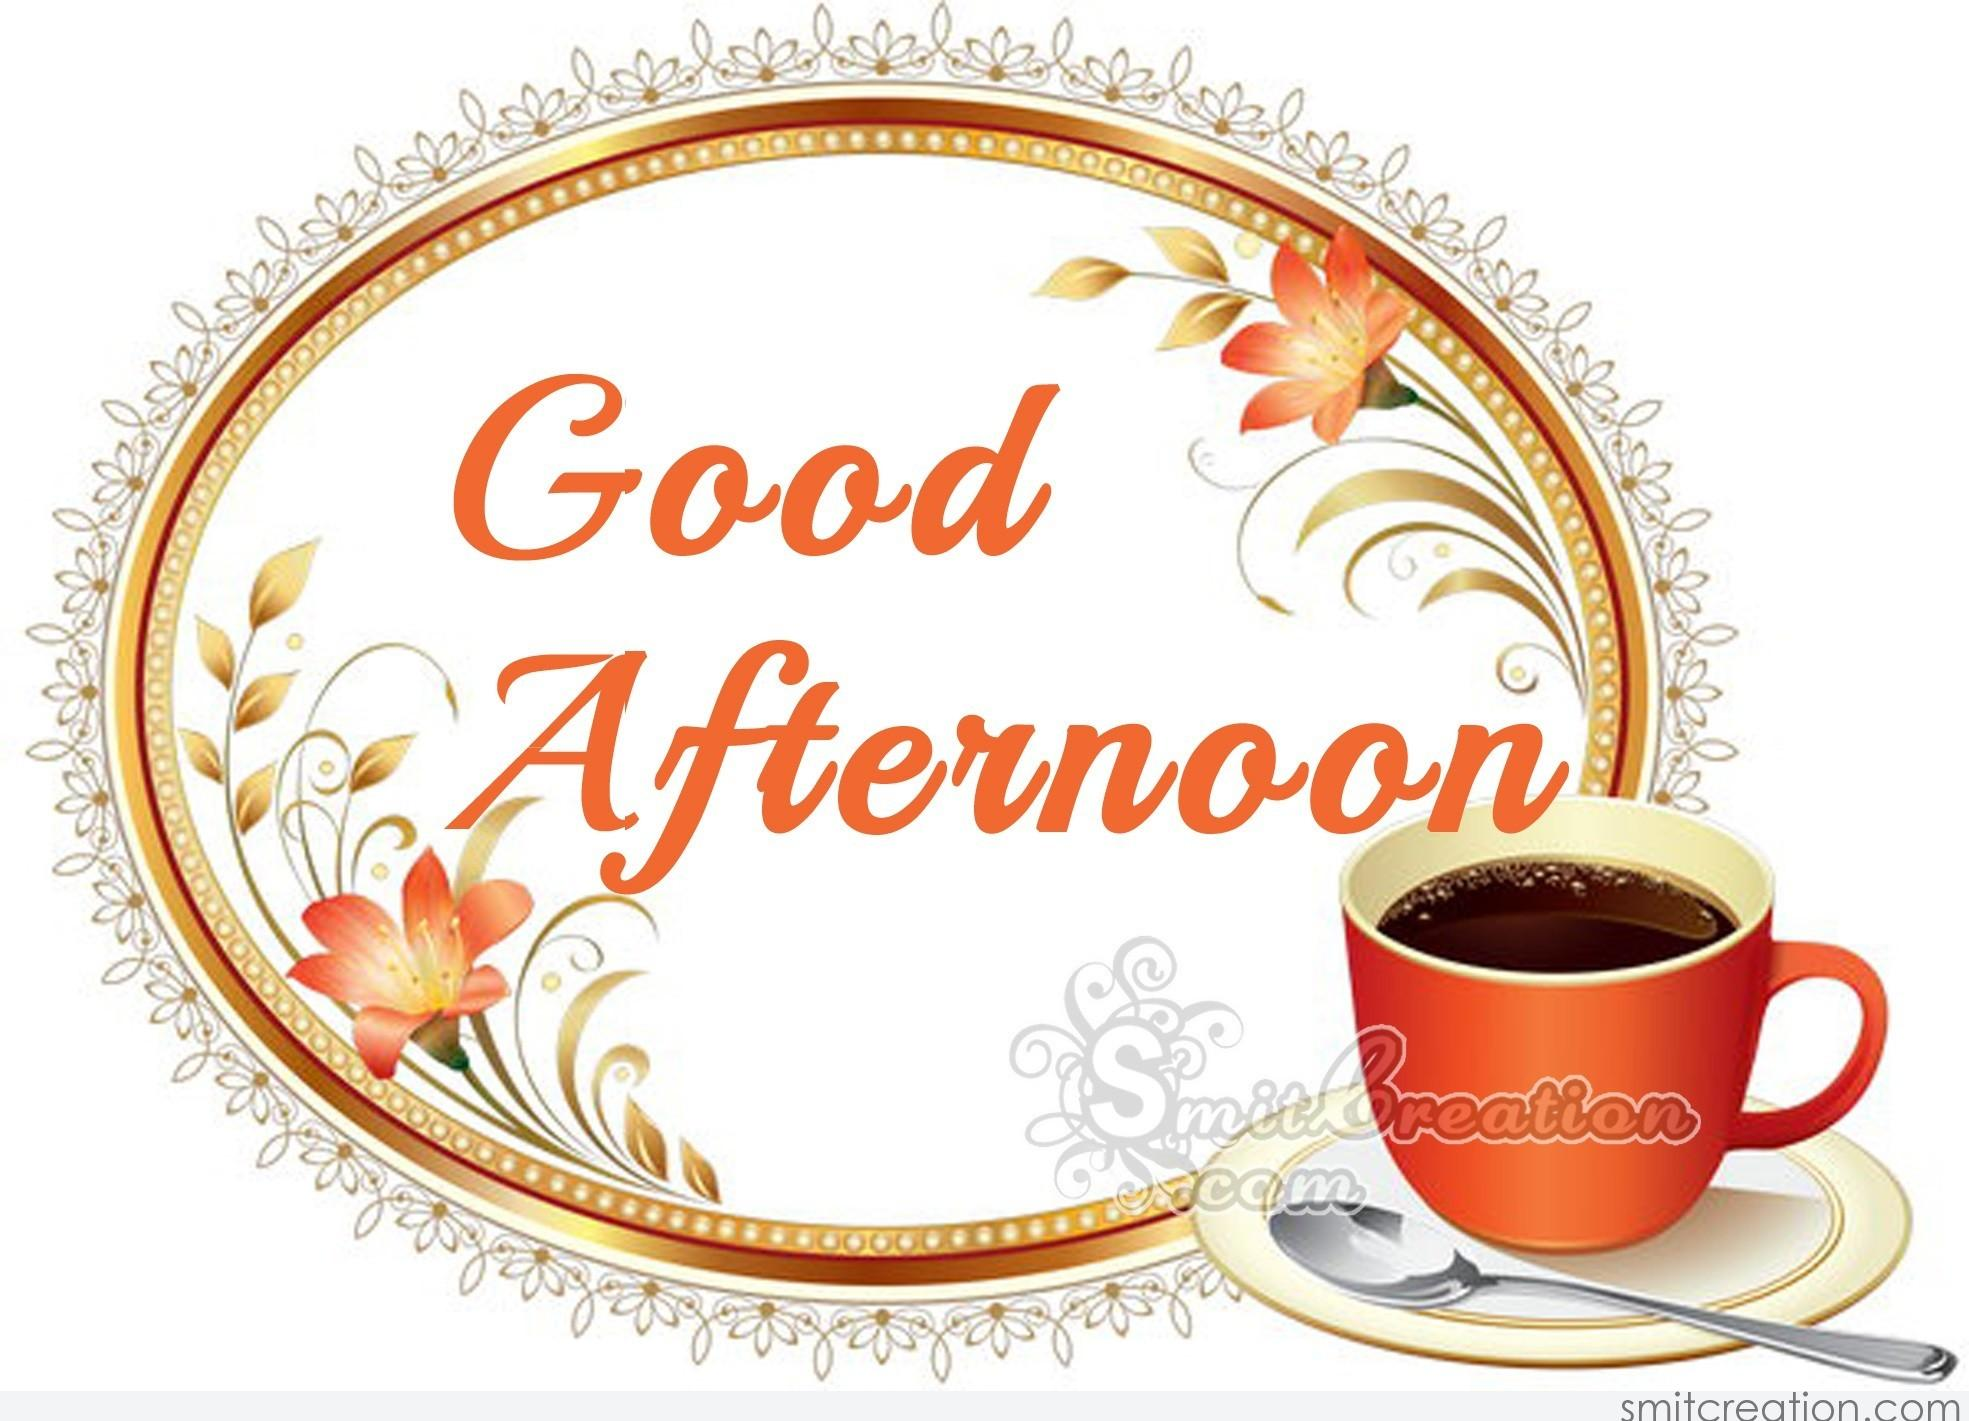 Good Afternoon Coffee Pictures and Graphics - SmitCreation.com #afternoonCoffee